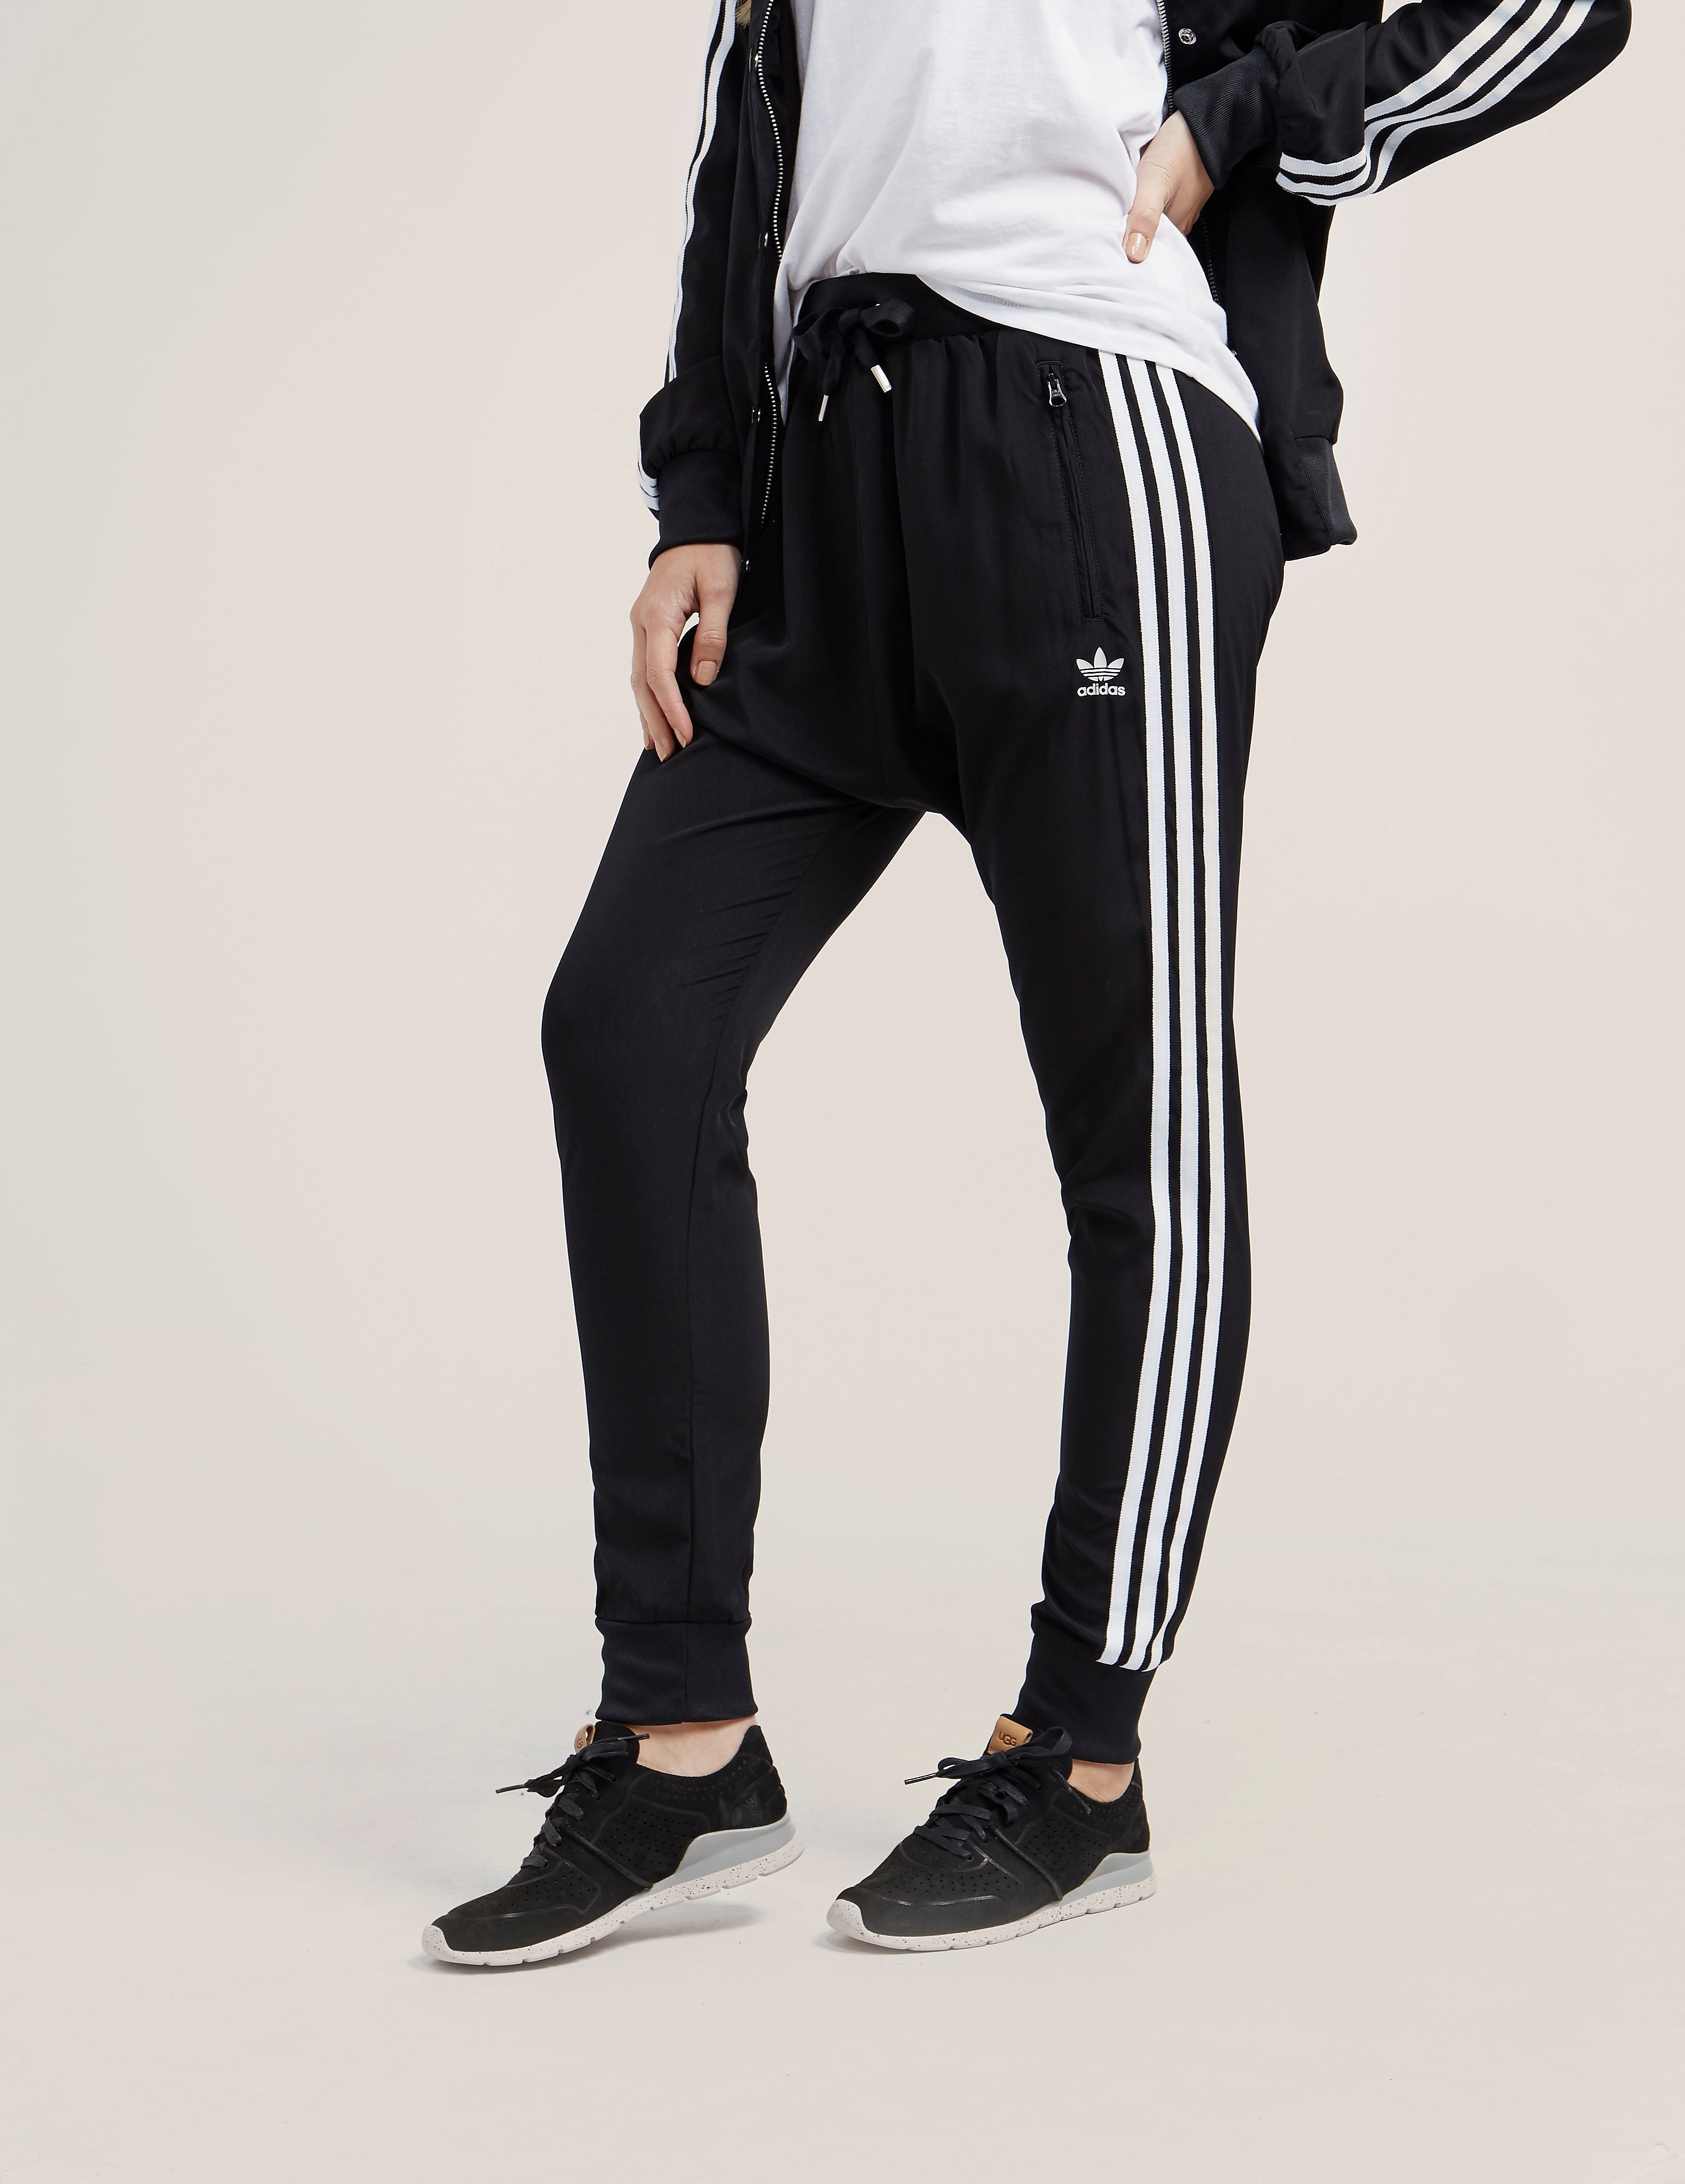 adidas Originals Drop Crotch Pants